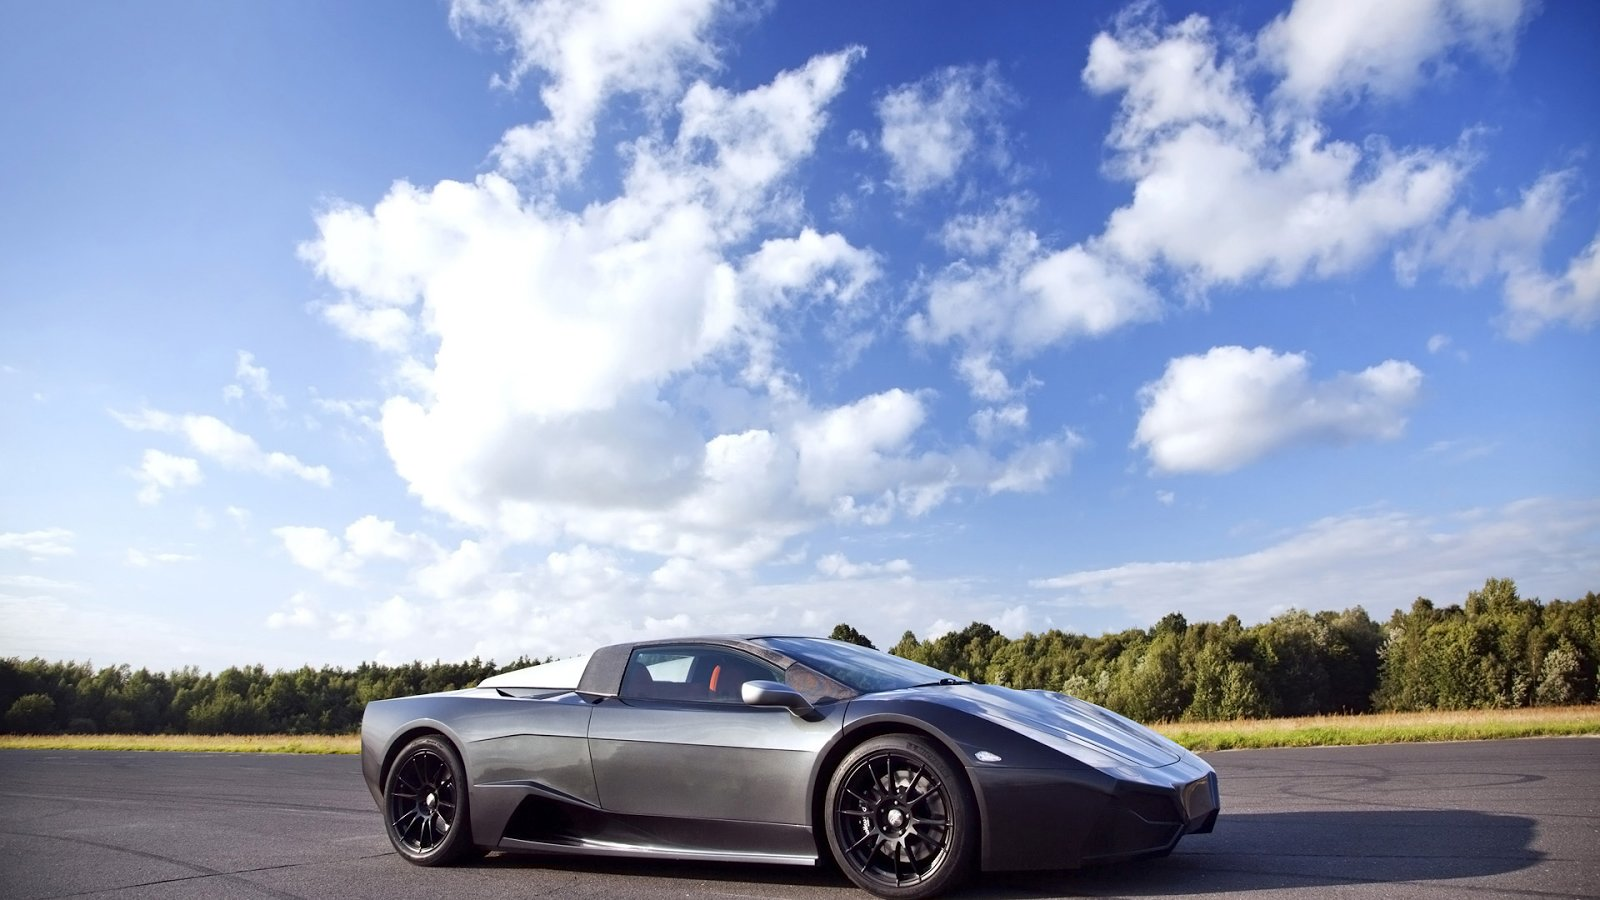 Latest Bestcar 2012 Arrinera Free Download